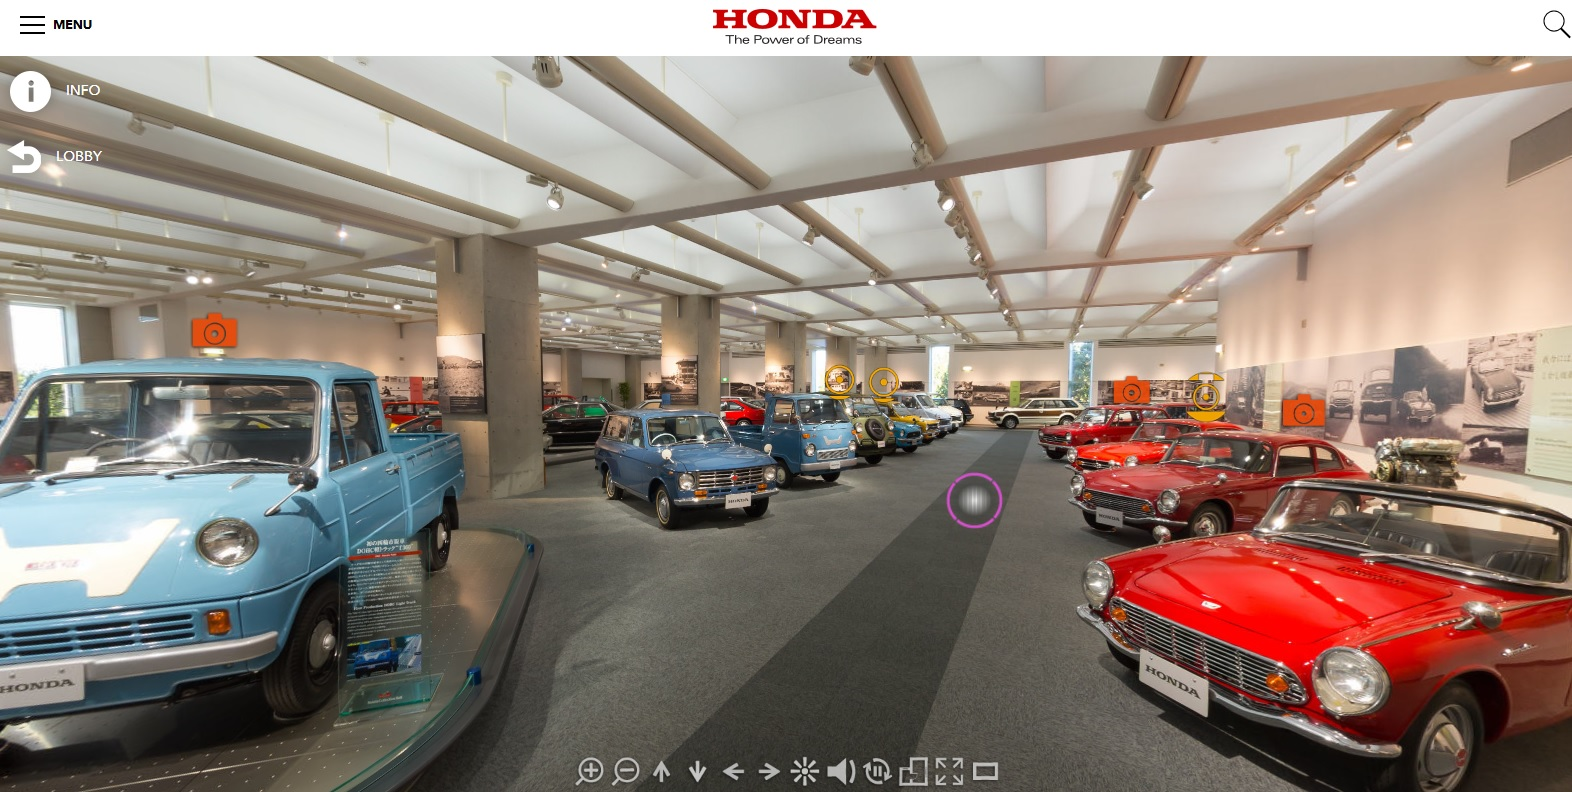 Honda Collection Hall Virtual Reality?